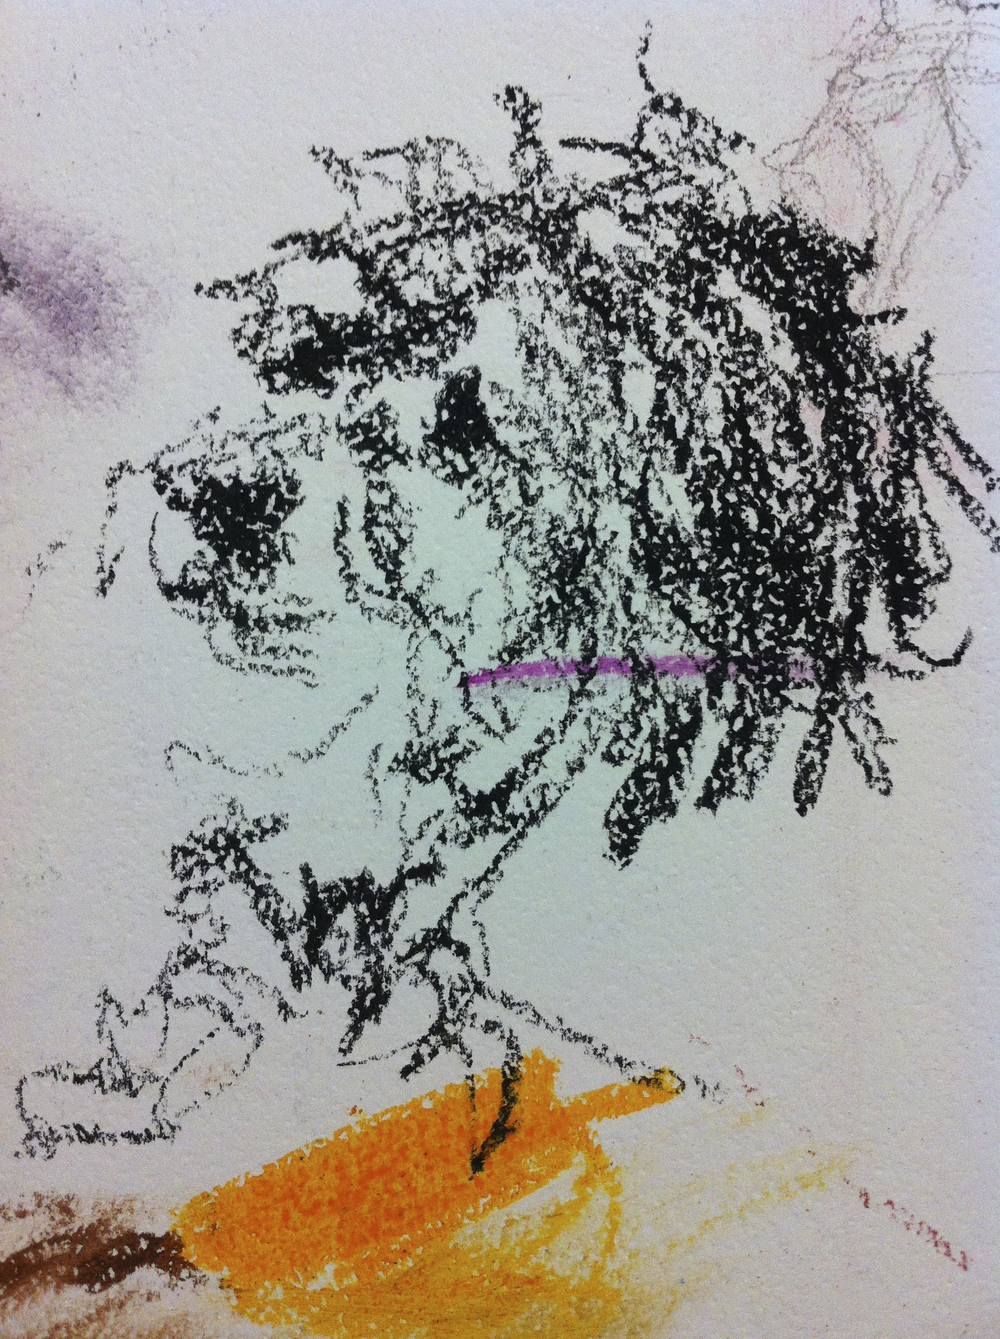 10-Second Sketch - Of a little dog named Che. This became a handy palette for another project.